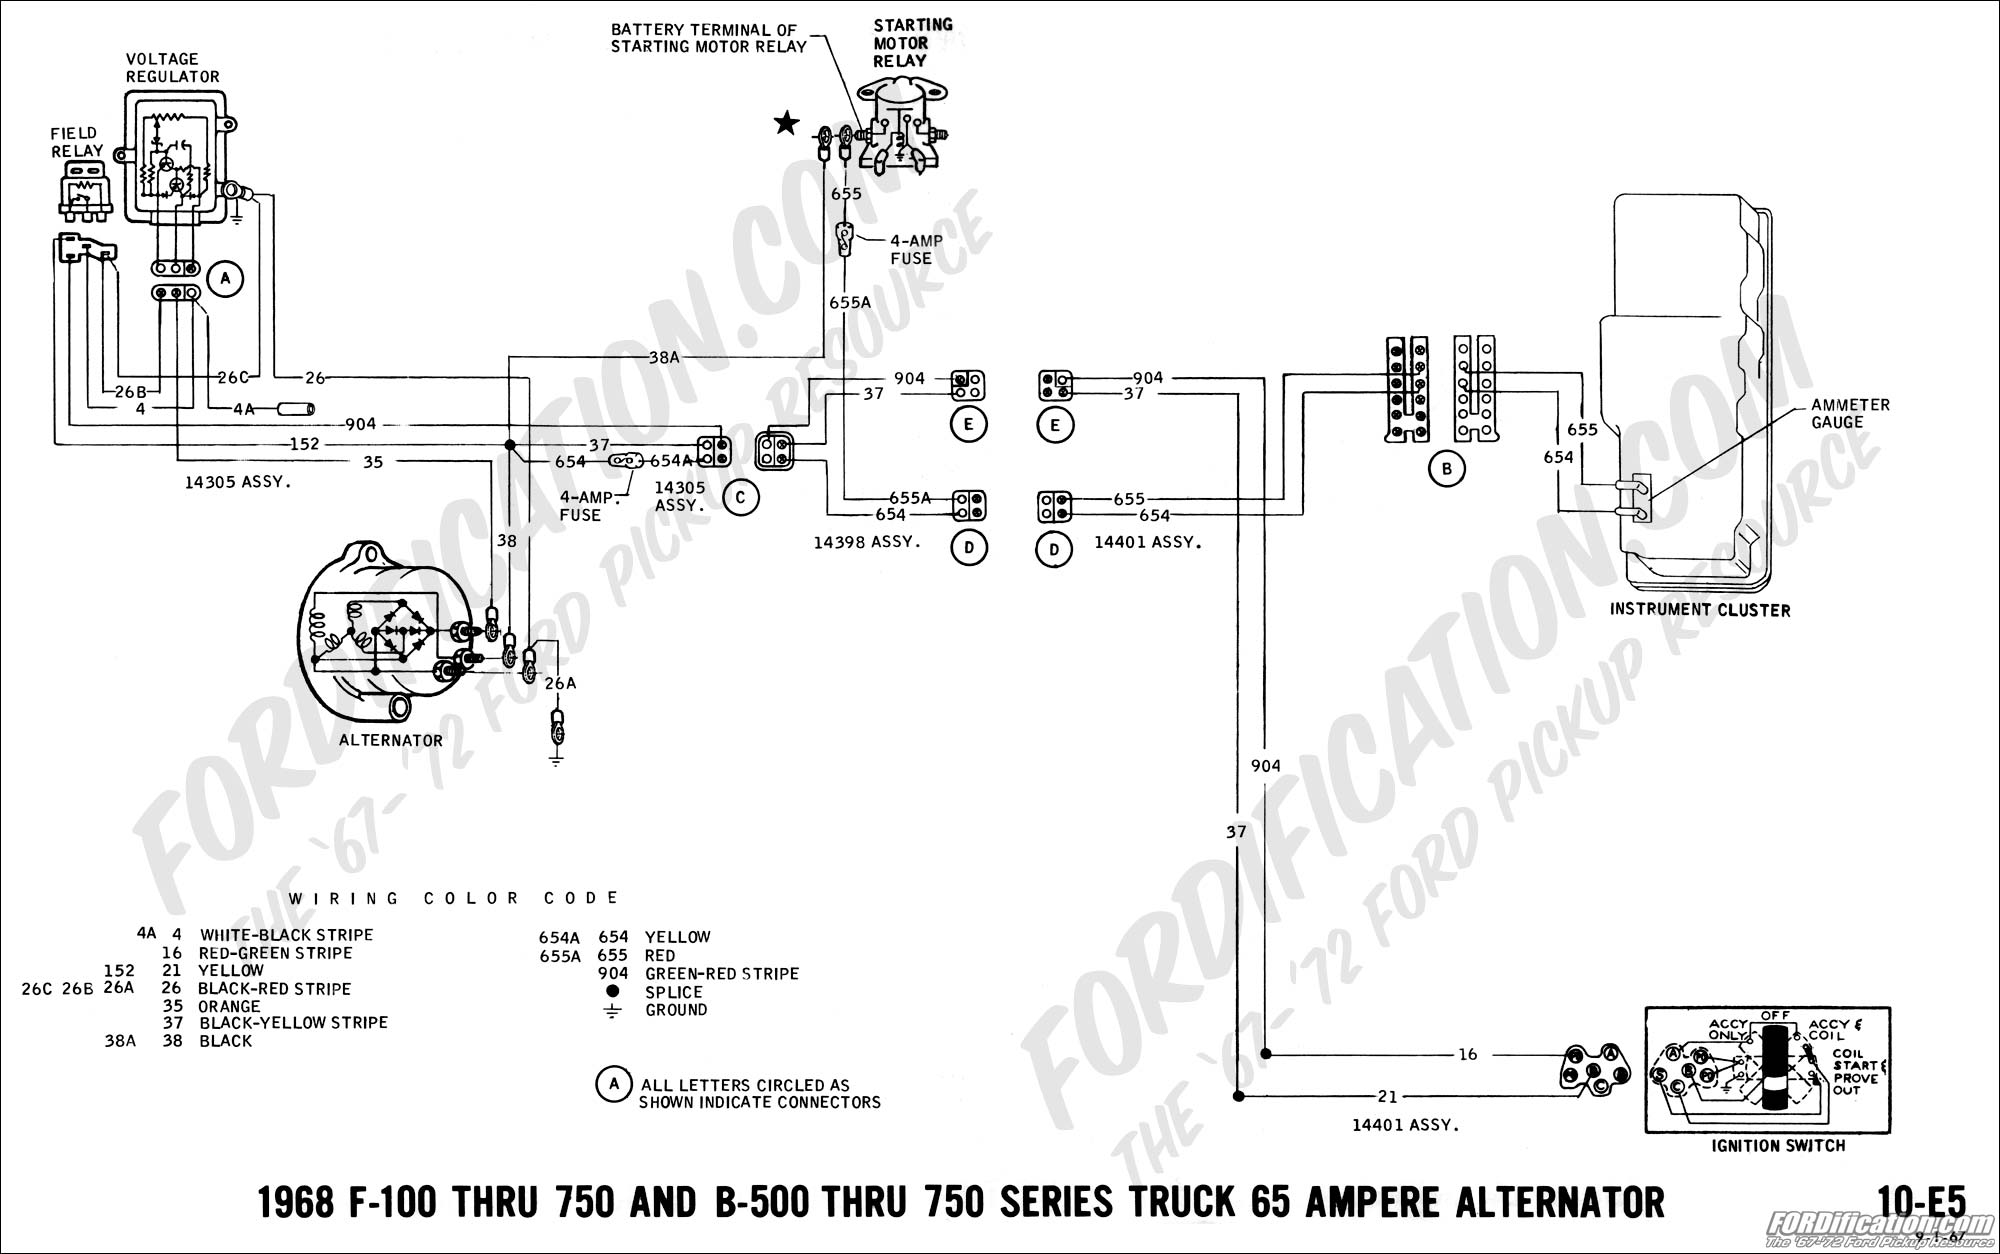 68 07 ford truck technical drawings and schematics section h wiring Ford 3 Wire Alternator Diagram at mifinder.co